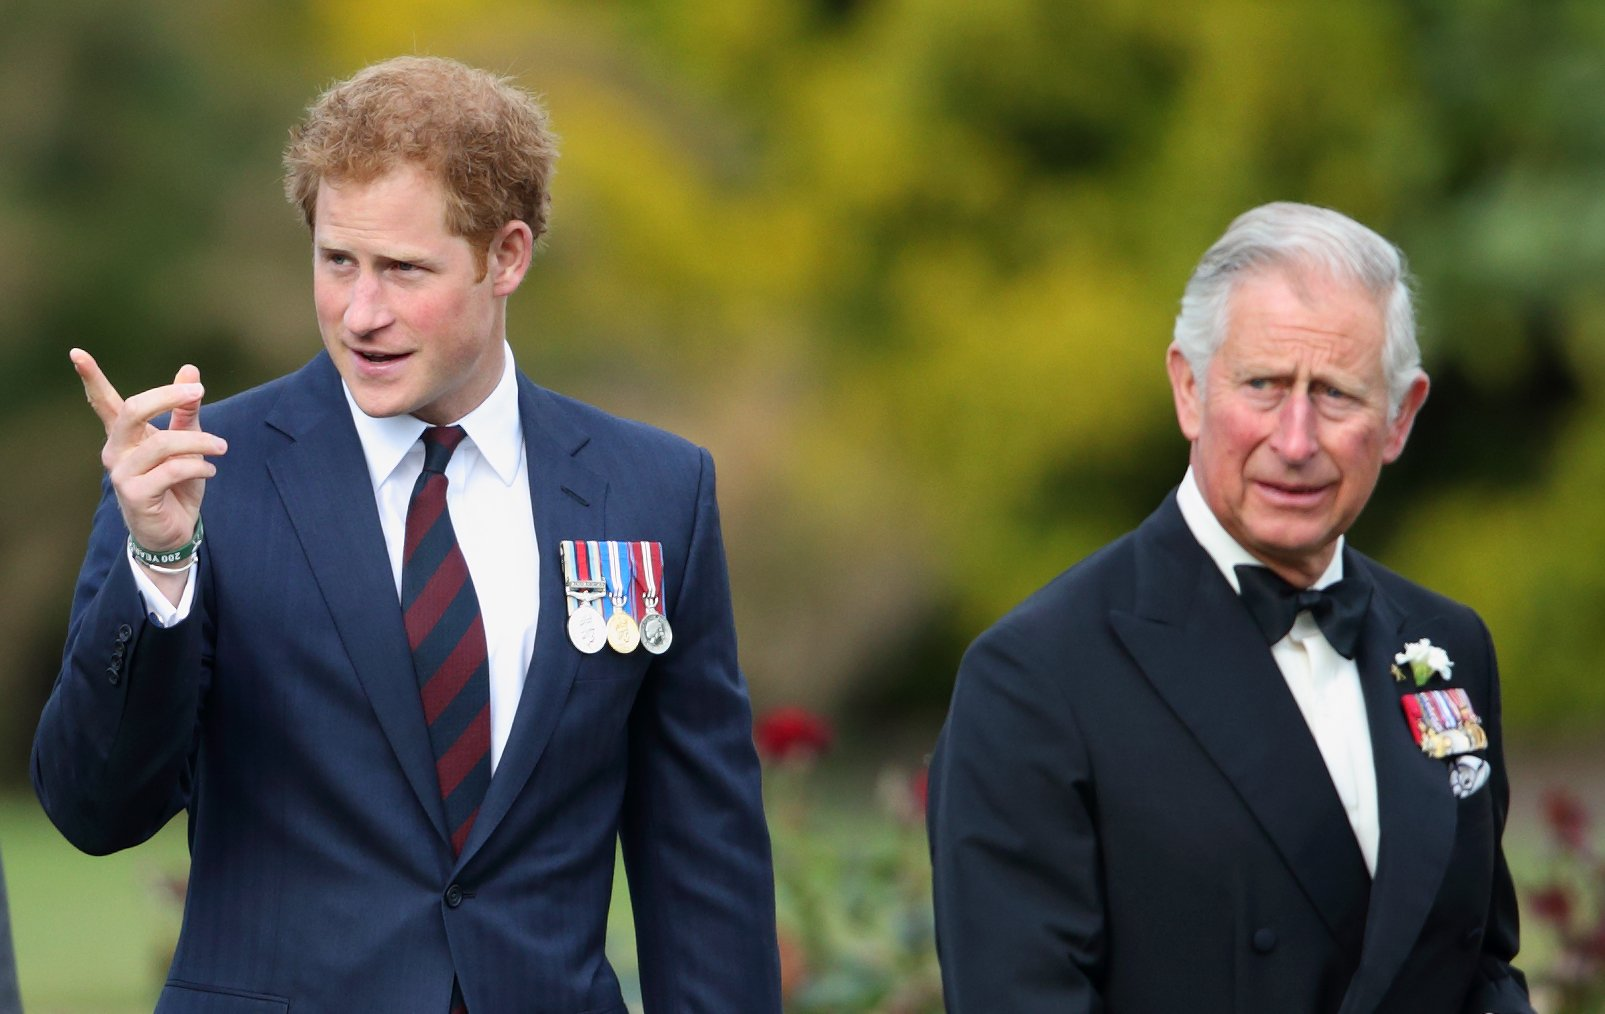 Prince Harry and Prince Charles attend the Gurkha 200 Pageant at the Royal Hospital Chelsea on June 9, 2015 in London, England | Photo: Getty Images